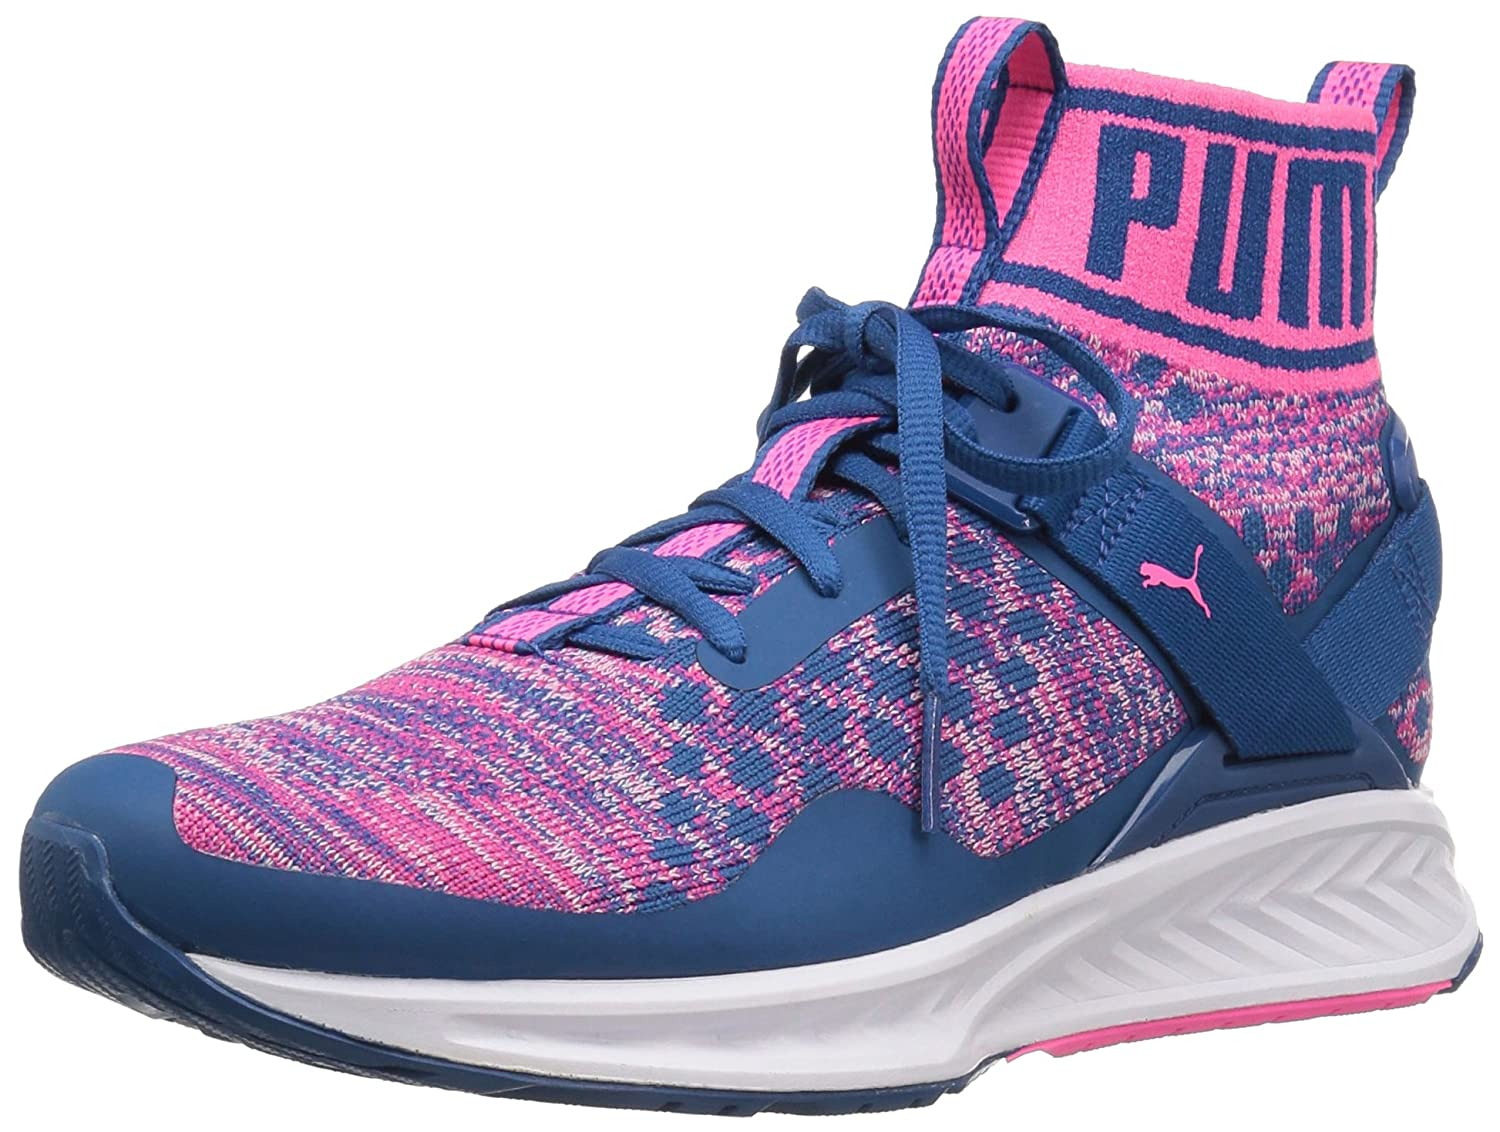 PUMA Women's Ignite Evoknit WN's Cross-Trainer Shoe B01J5MRCKO 9 M US|True Blue-knockout Pink-puma White